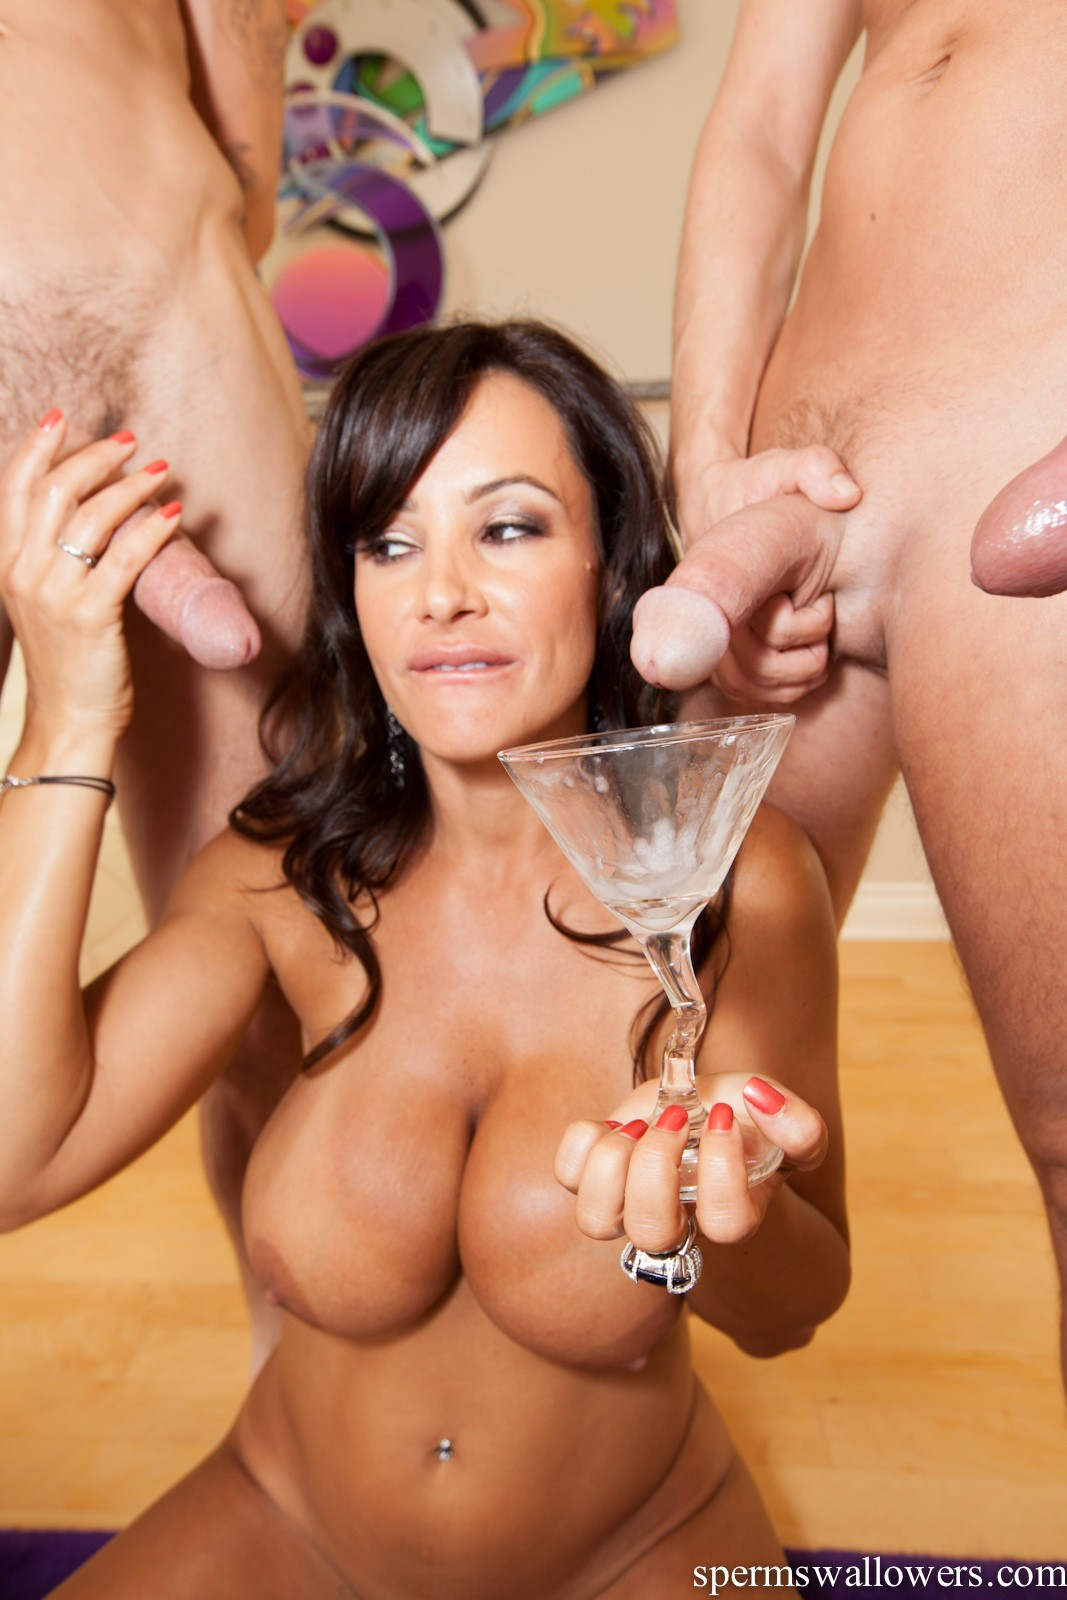 Hot sex cocktail 6